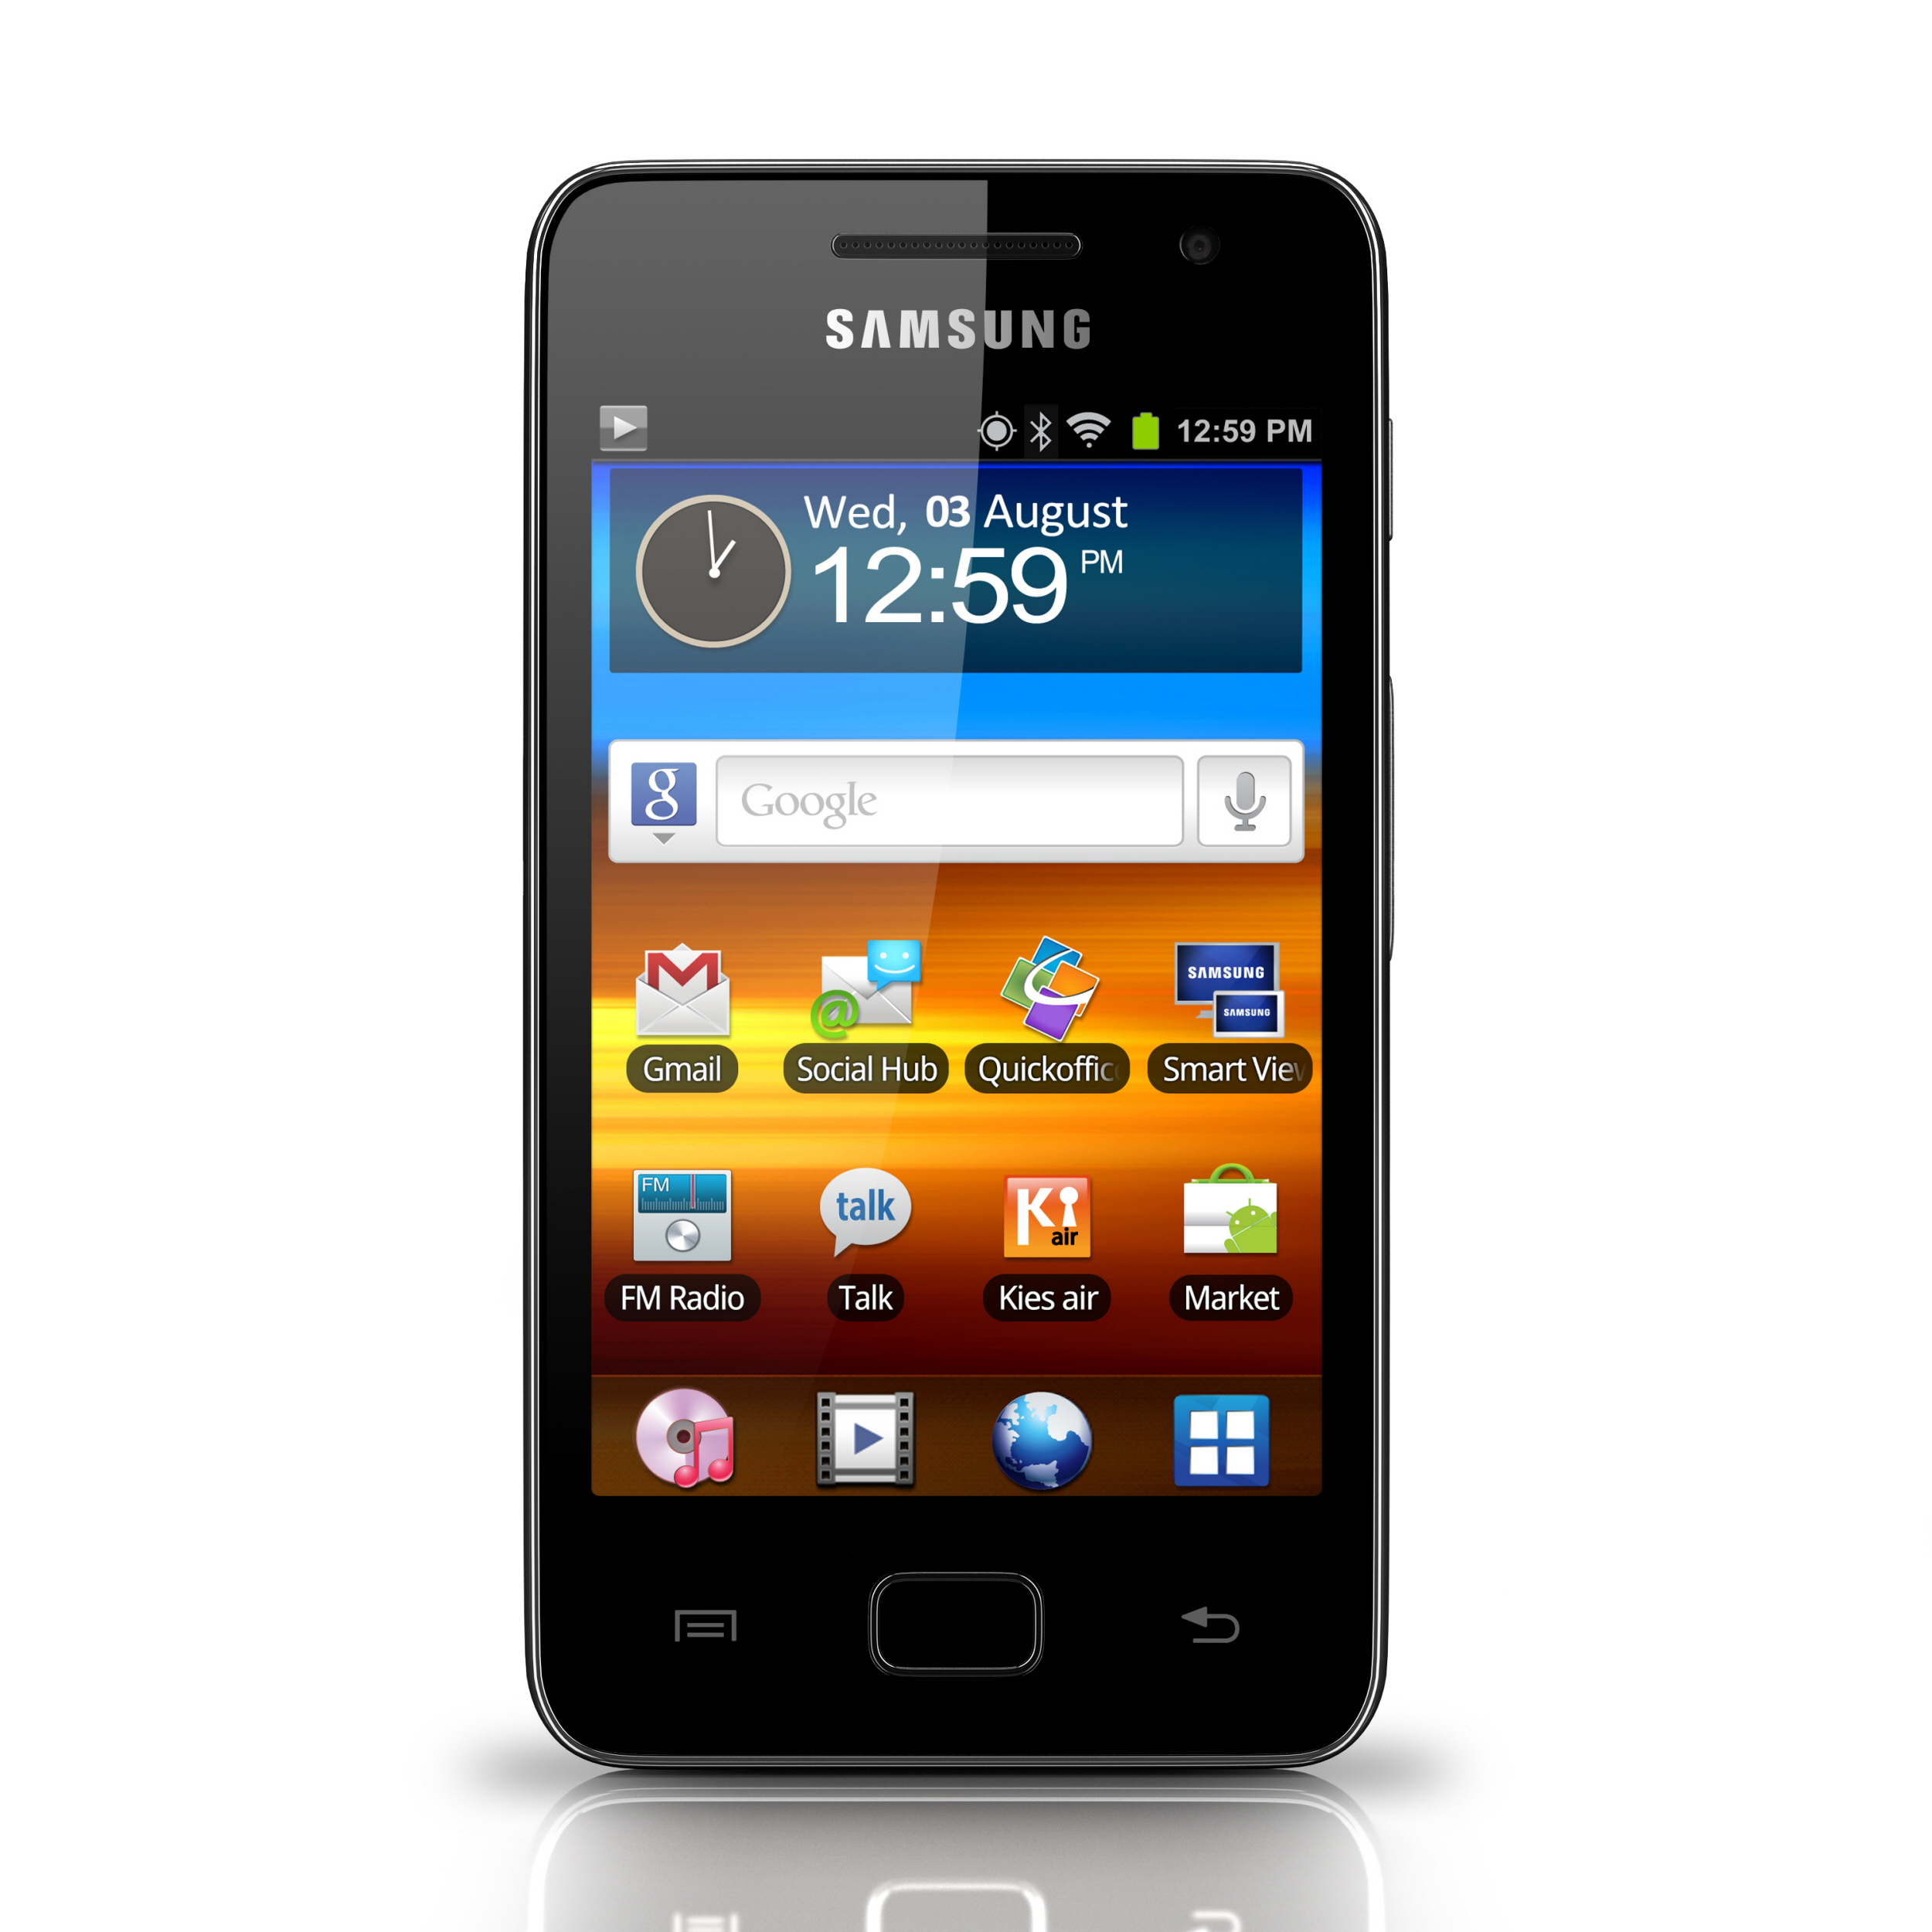 GALAXY S WiFi 3.6 Product Image (1).jpg